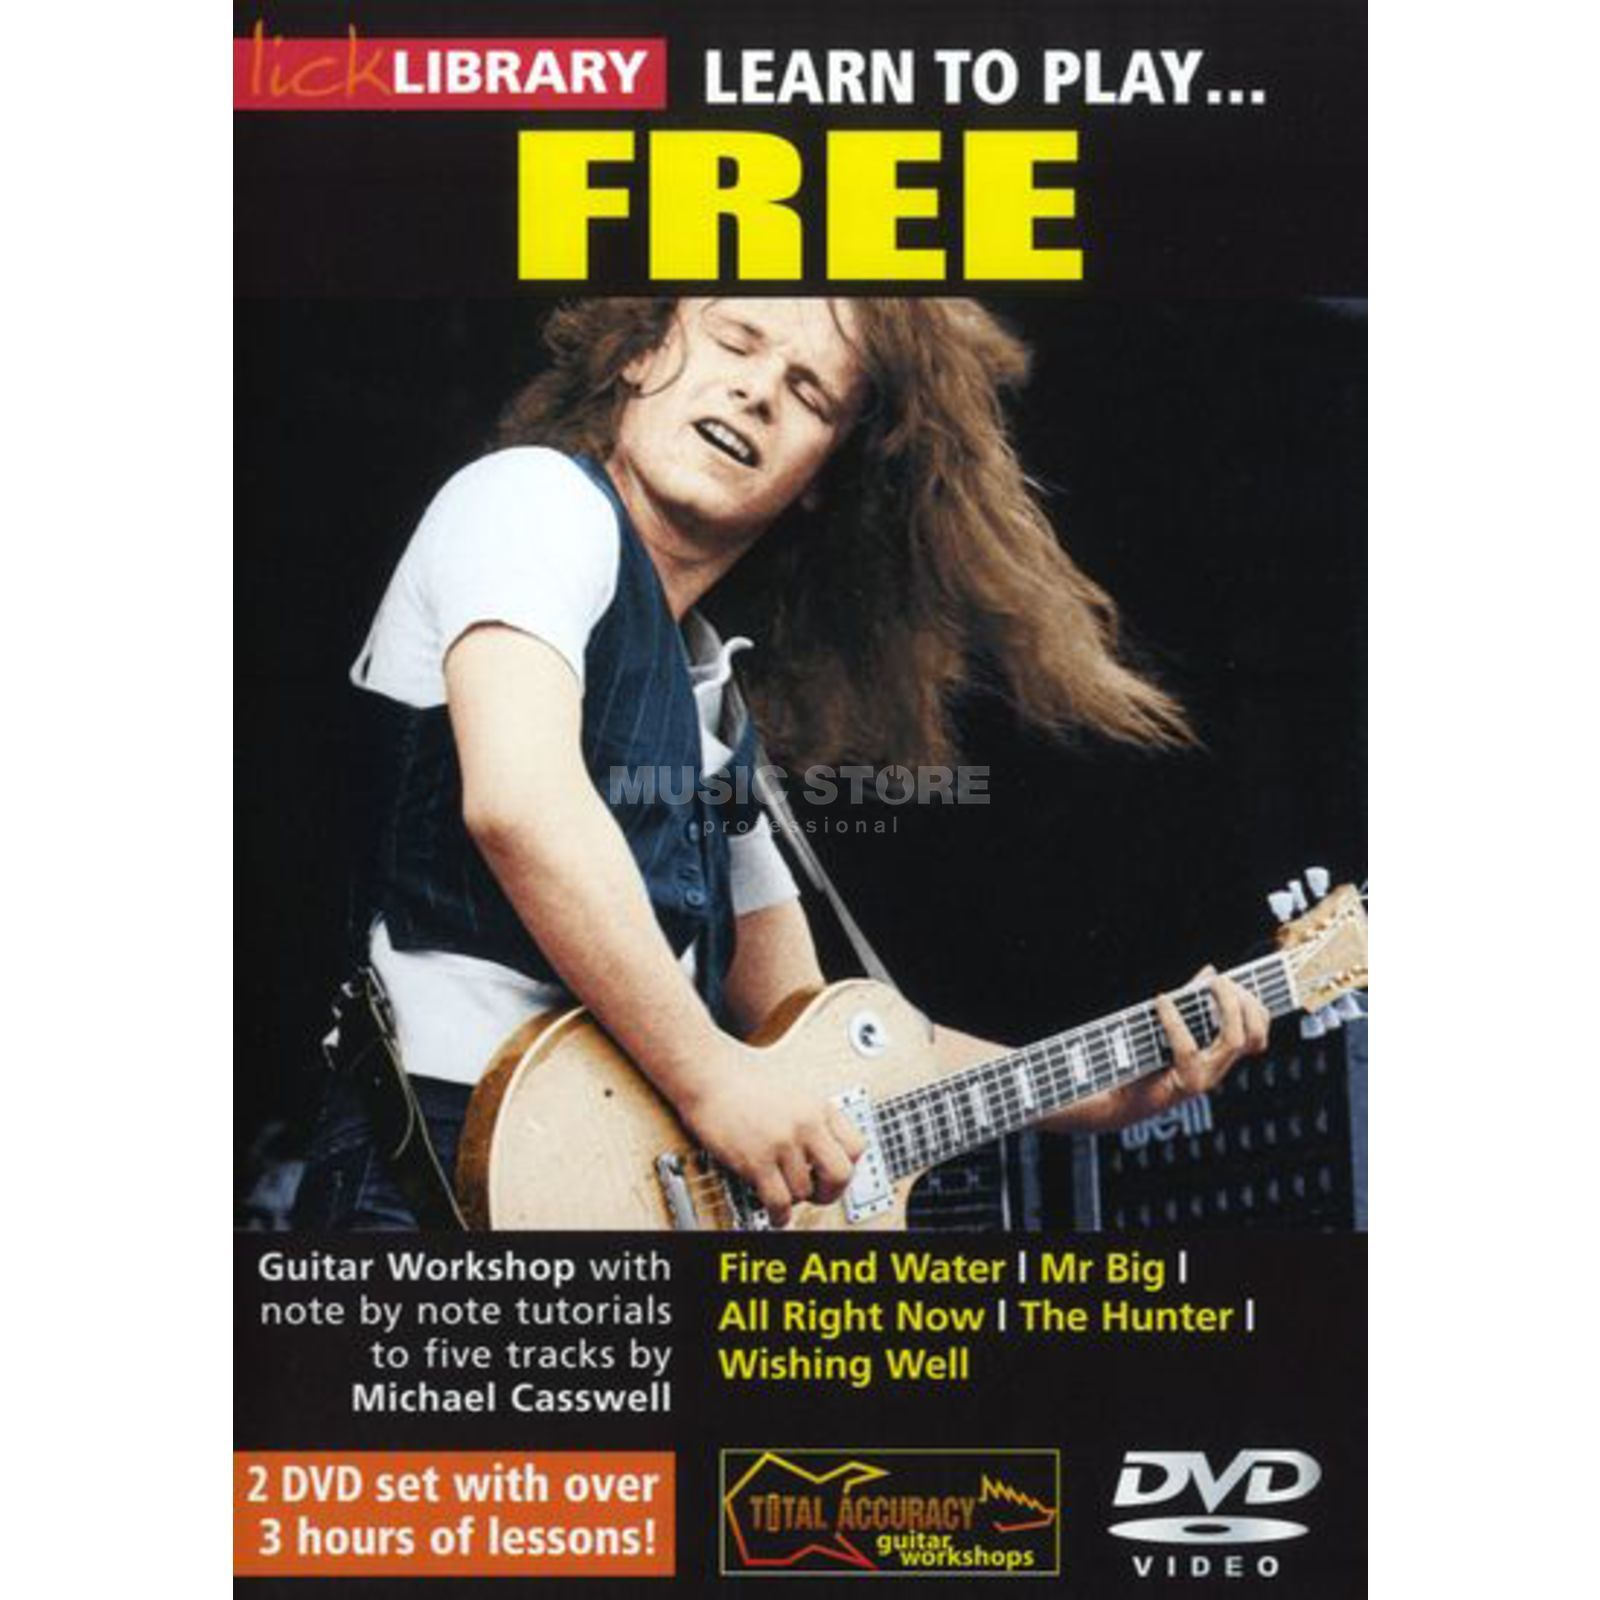 Roadrock International Lick Library: Learn To Play Free DVD Produktbild